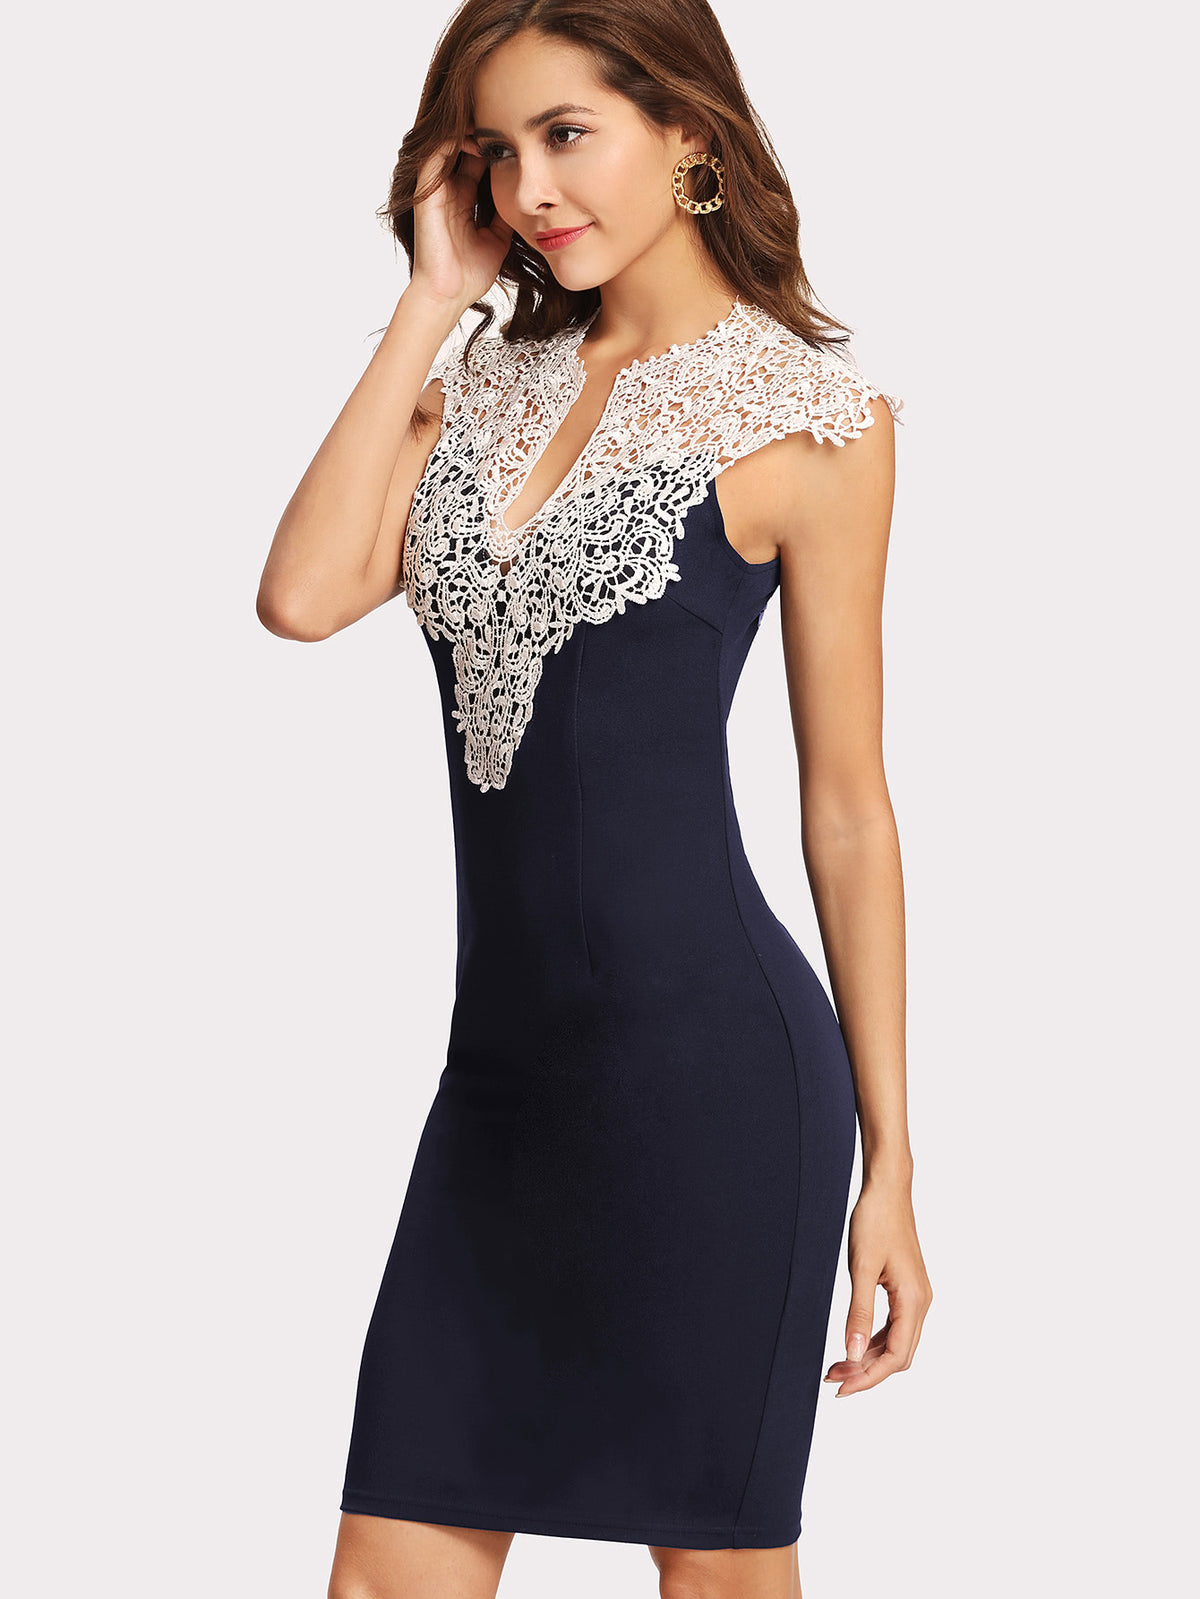 Floral Lace Yoke Form Fitting Dress